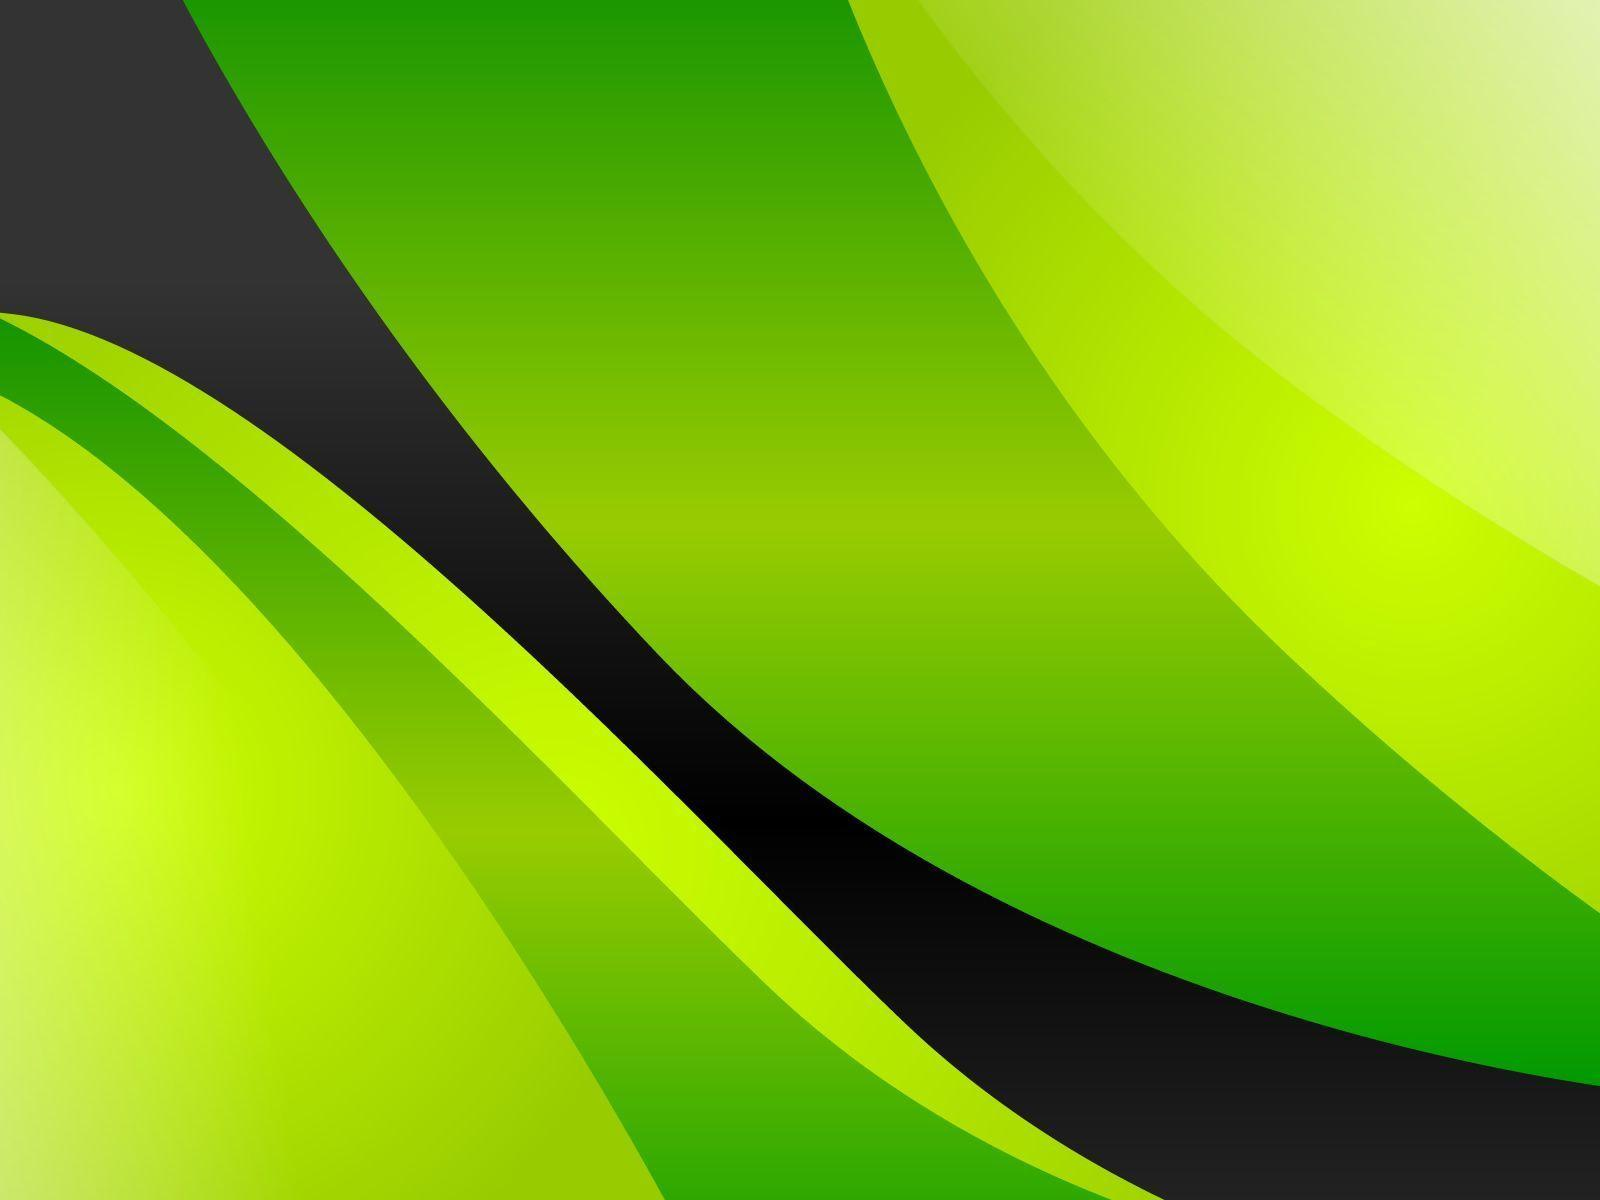 Wallpapers For > Green Lines Wallpapers